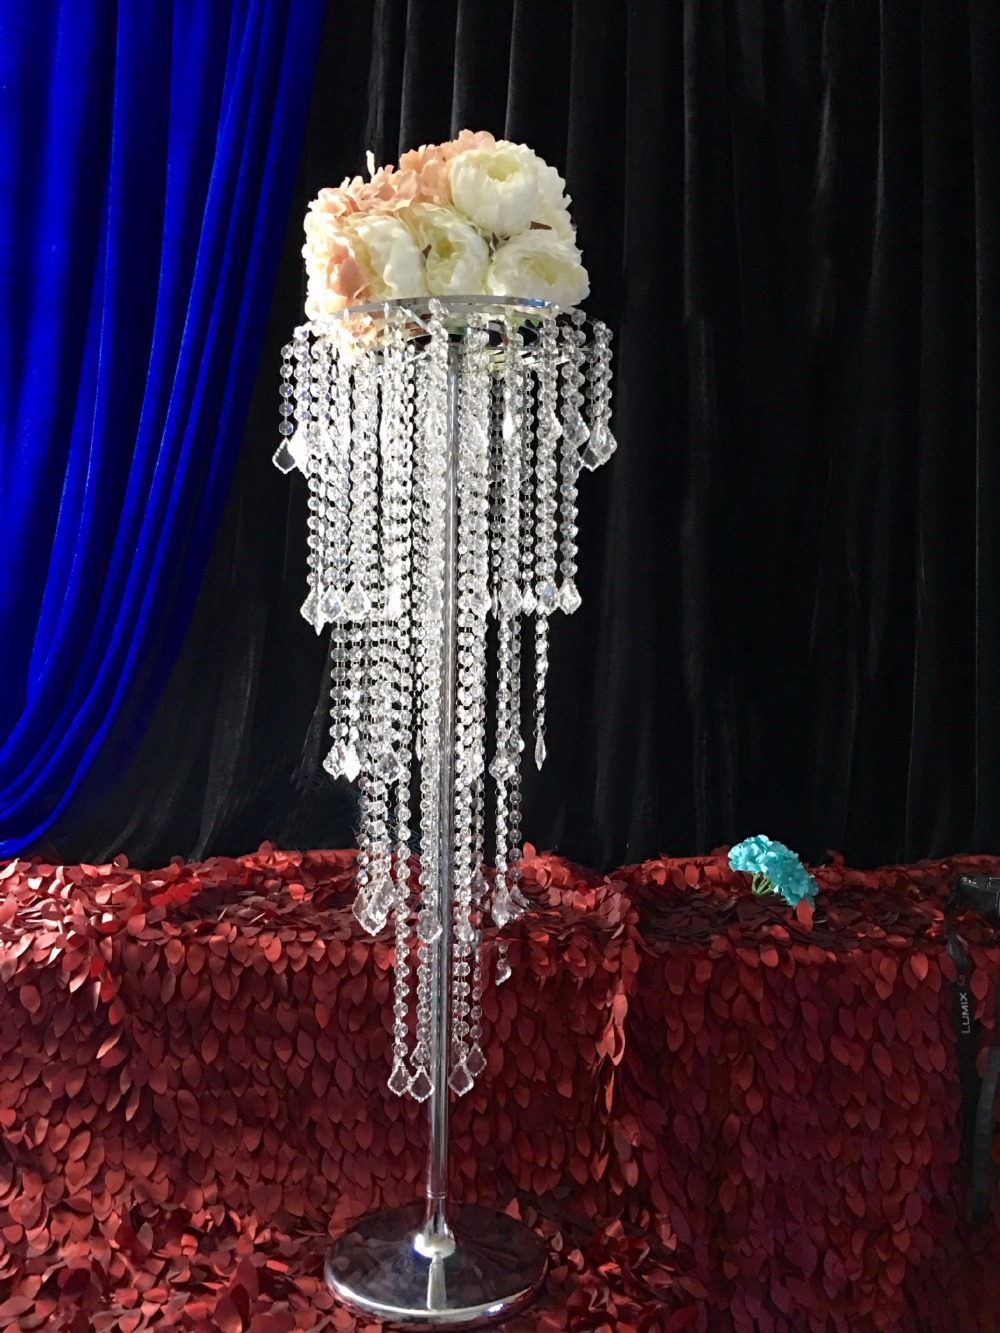 Wh wholesale vintage lead crystal table lamp buy cheap - 80cm Tall Table Centerpiece Wedding Decoration Flower Stand Wedding Chandelier Banquet Supply China Mainland